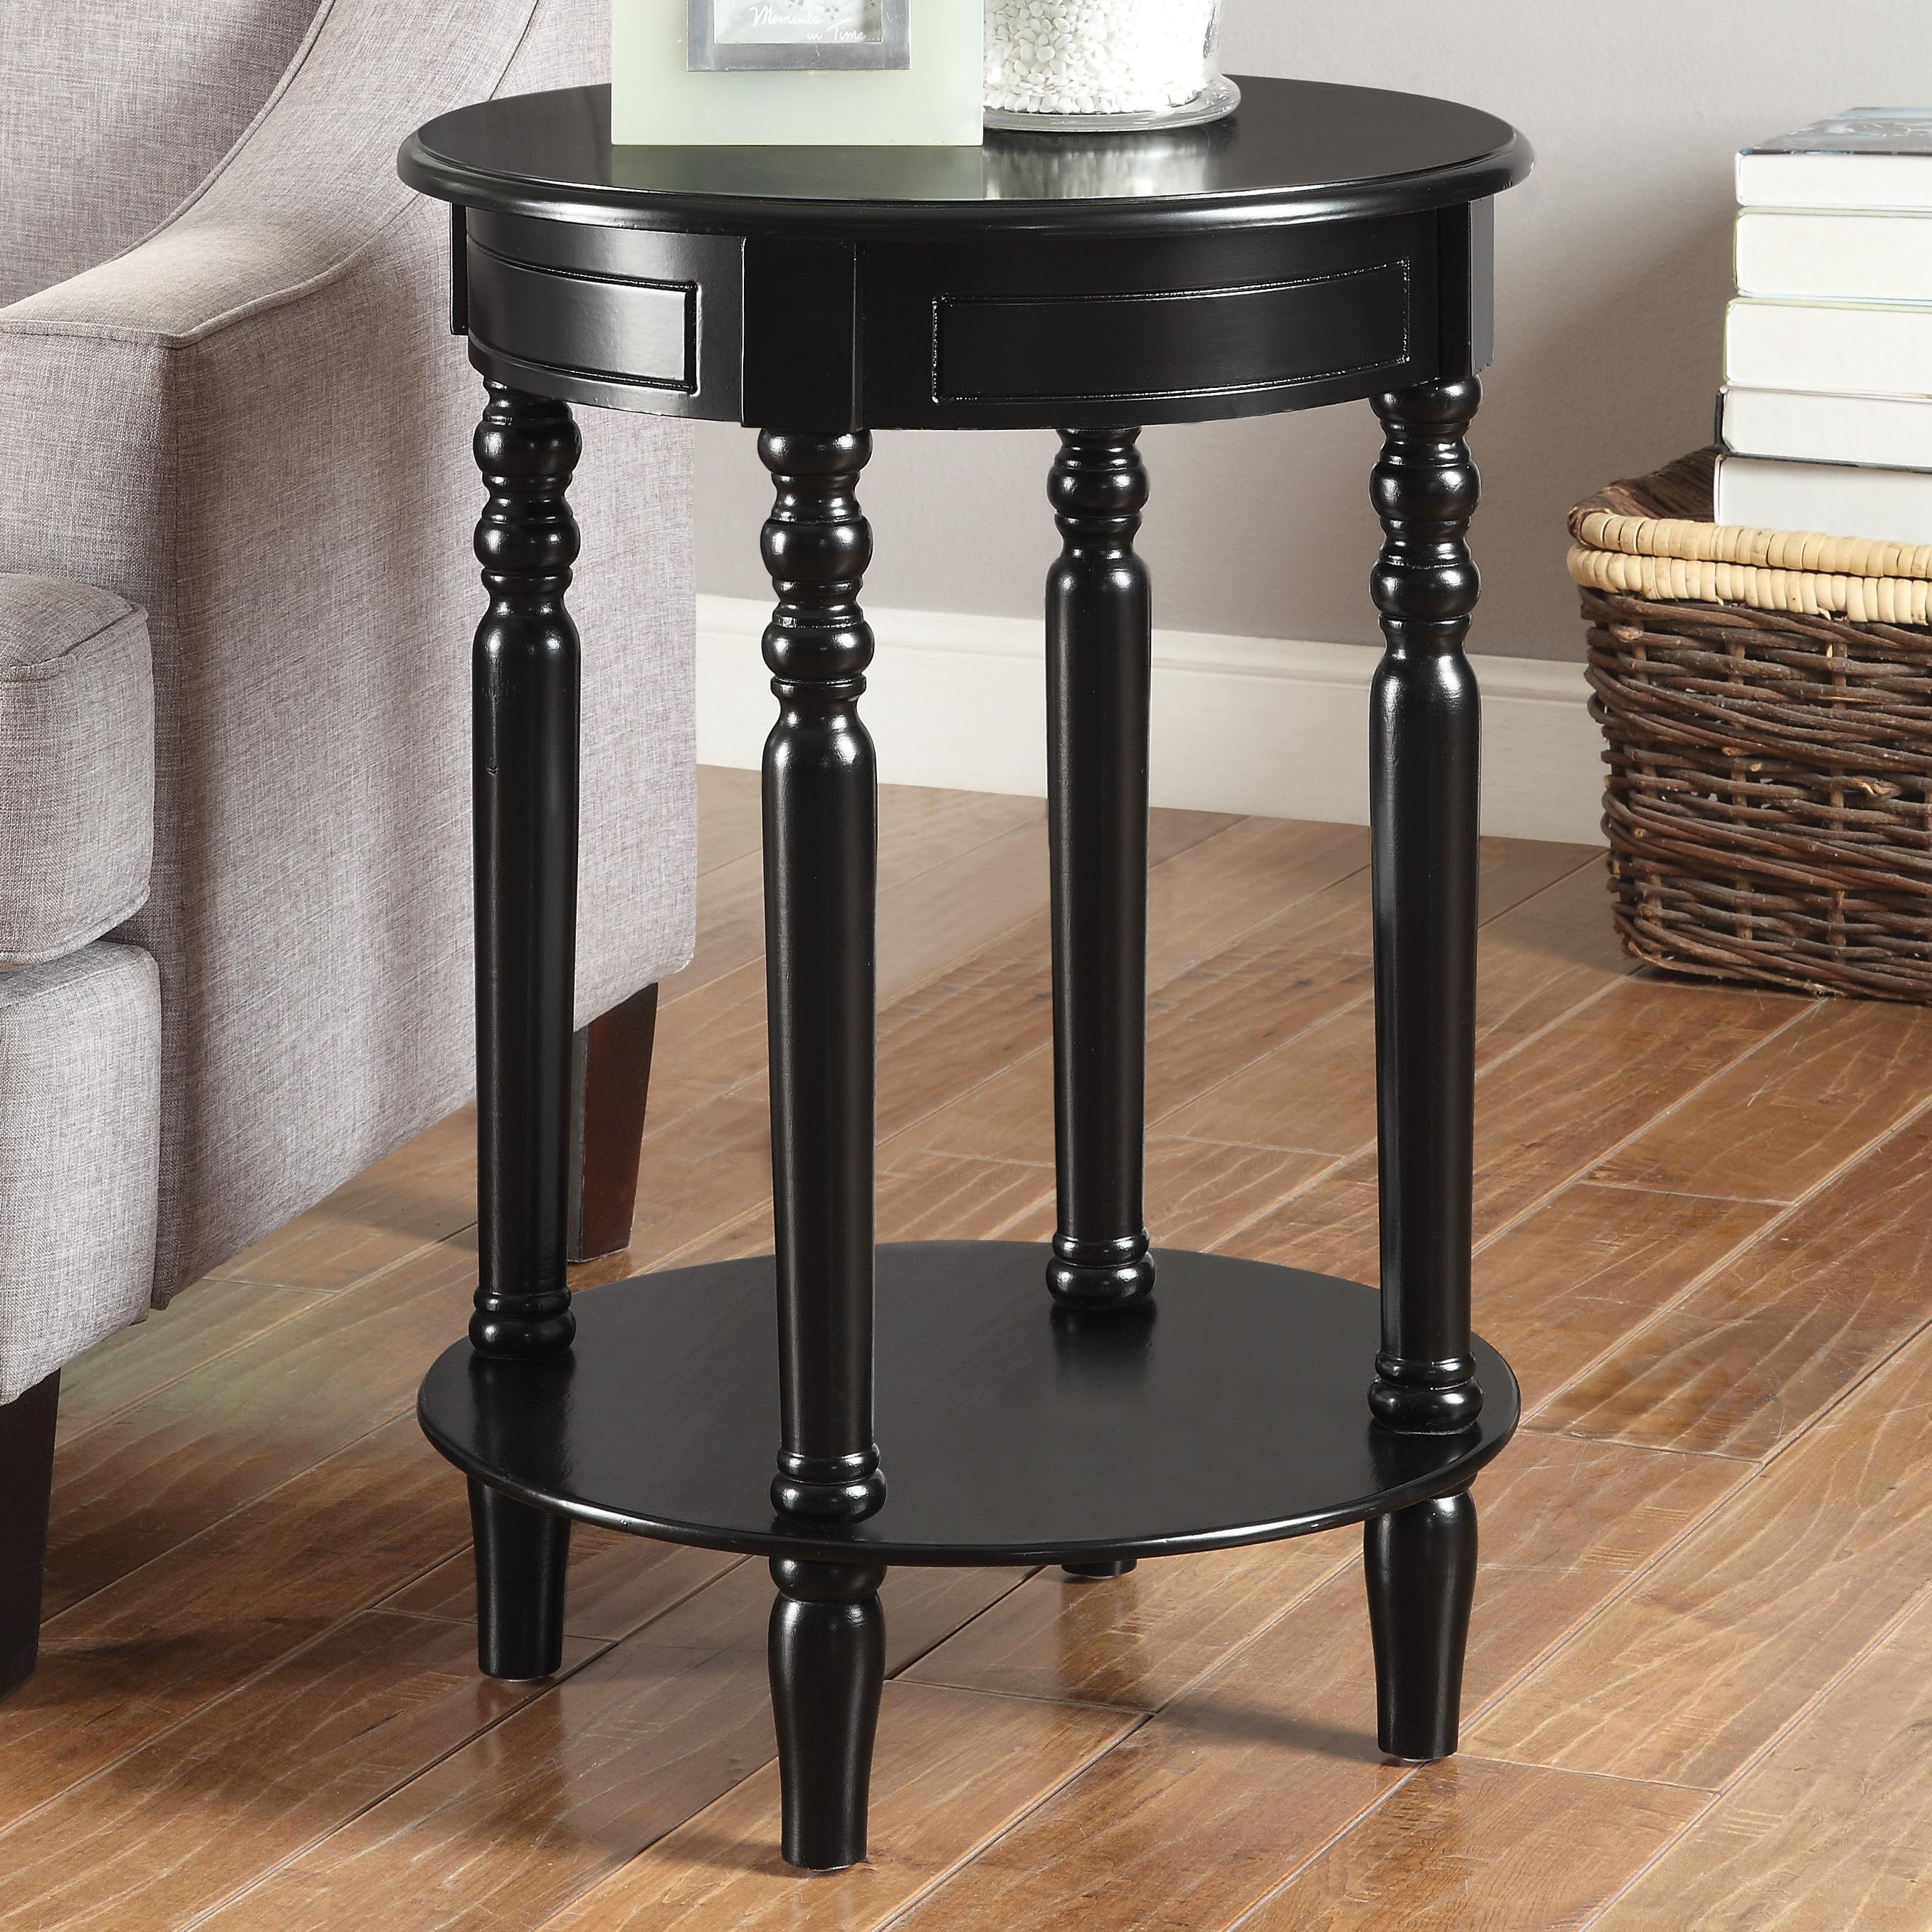 gorgeous small black outdoor side table target wicker kmart white argos round wooden metal glass gloss wood ana tables square bedside pedestal studio marble ideas lamps and full